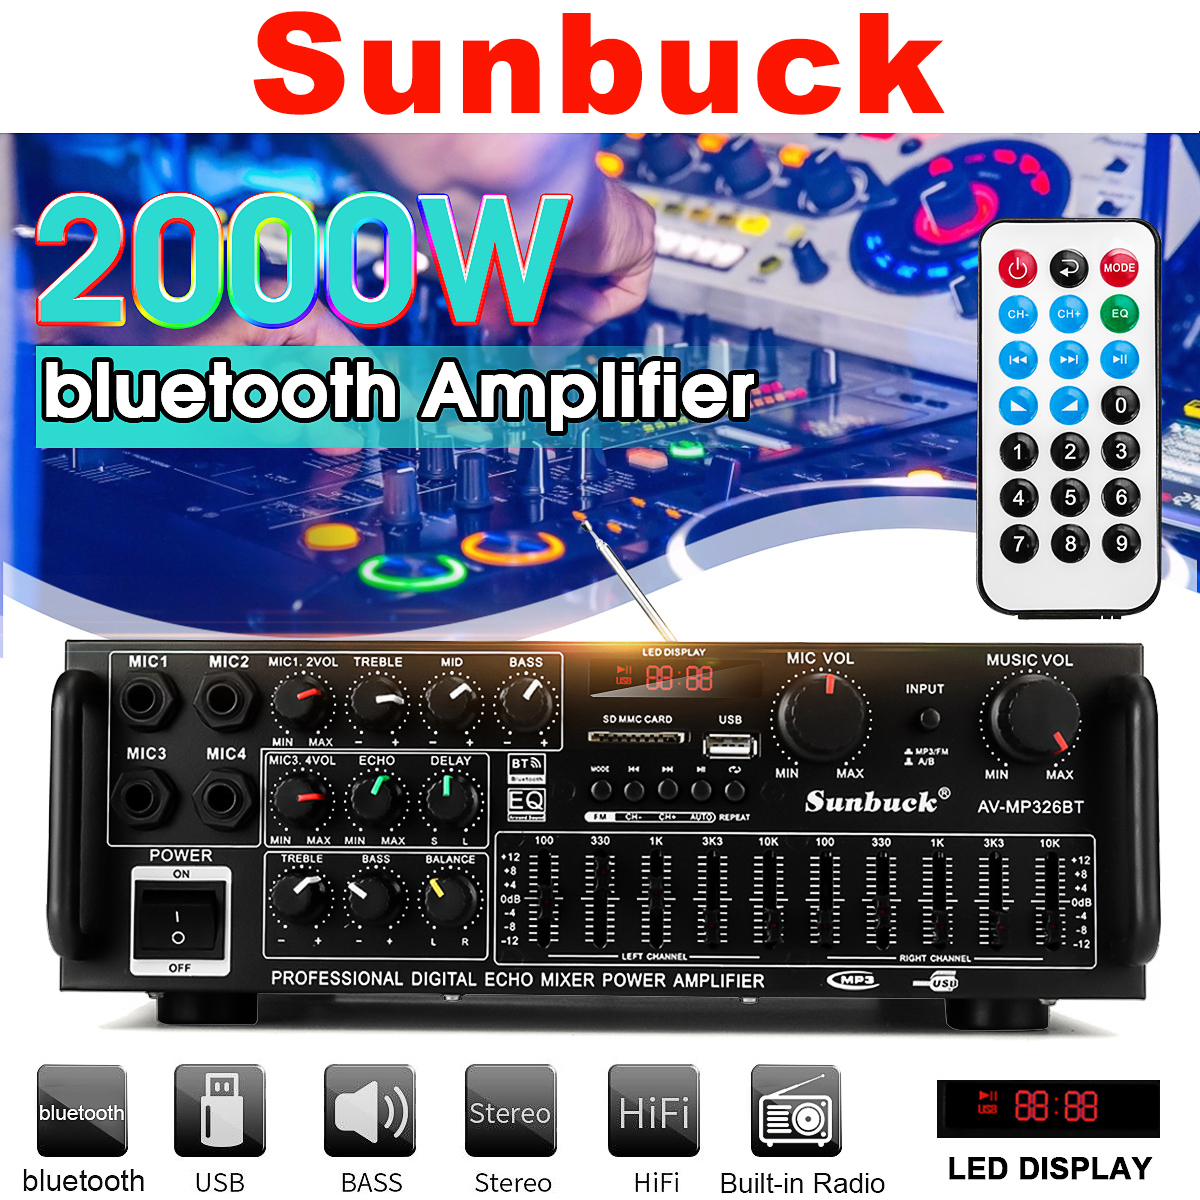 2000W 110V/220V 2channel Bluetooth Home Stereo Power Audio Amplifier Audio USB SD Remote Amplifiers Subwoofer Amplifier